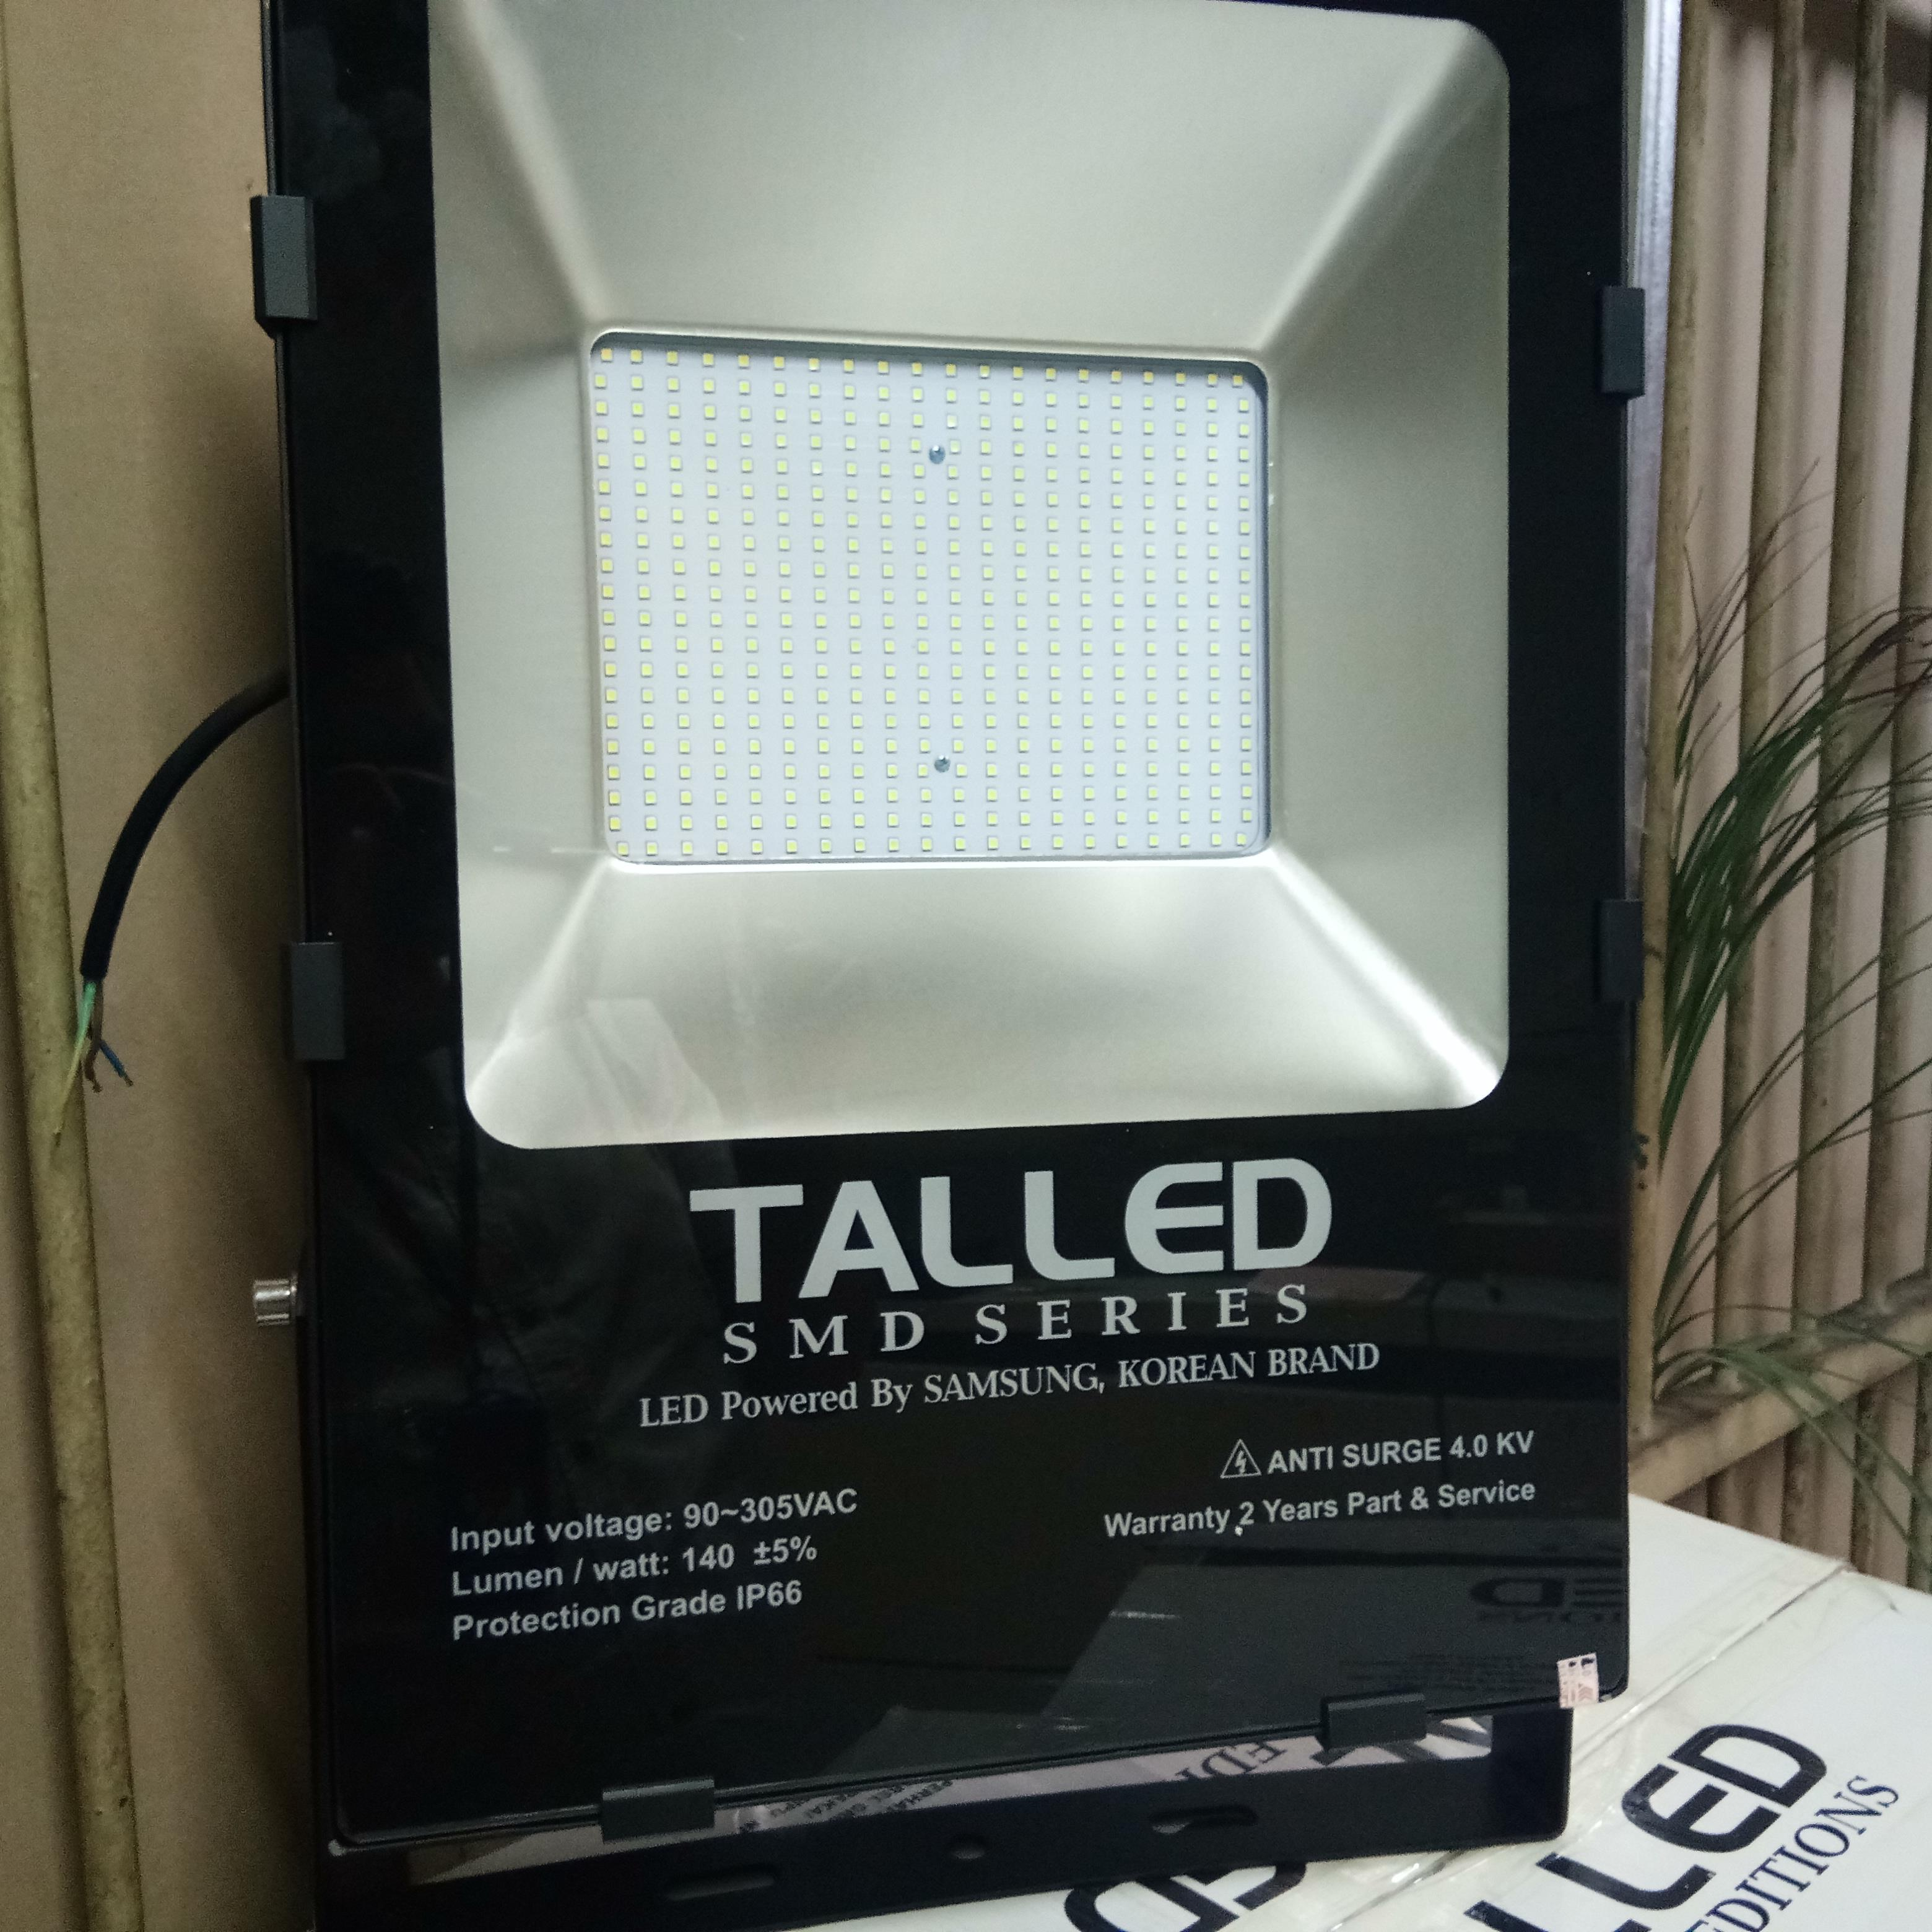 Sell Flood Light LED Talled 400W from Indonesia by Simaz Multi Energi Cheap Price